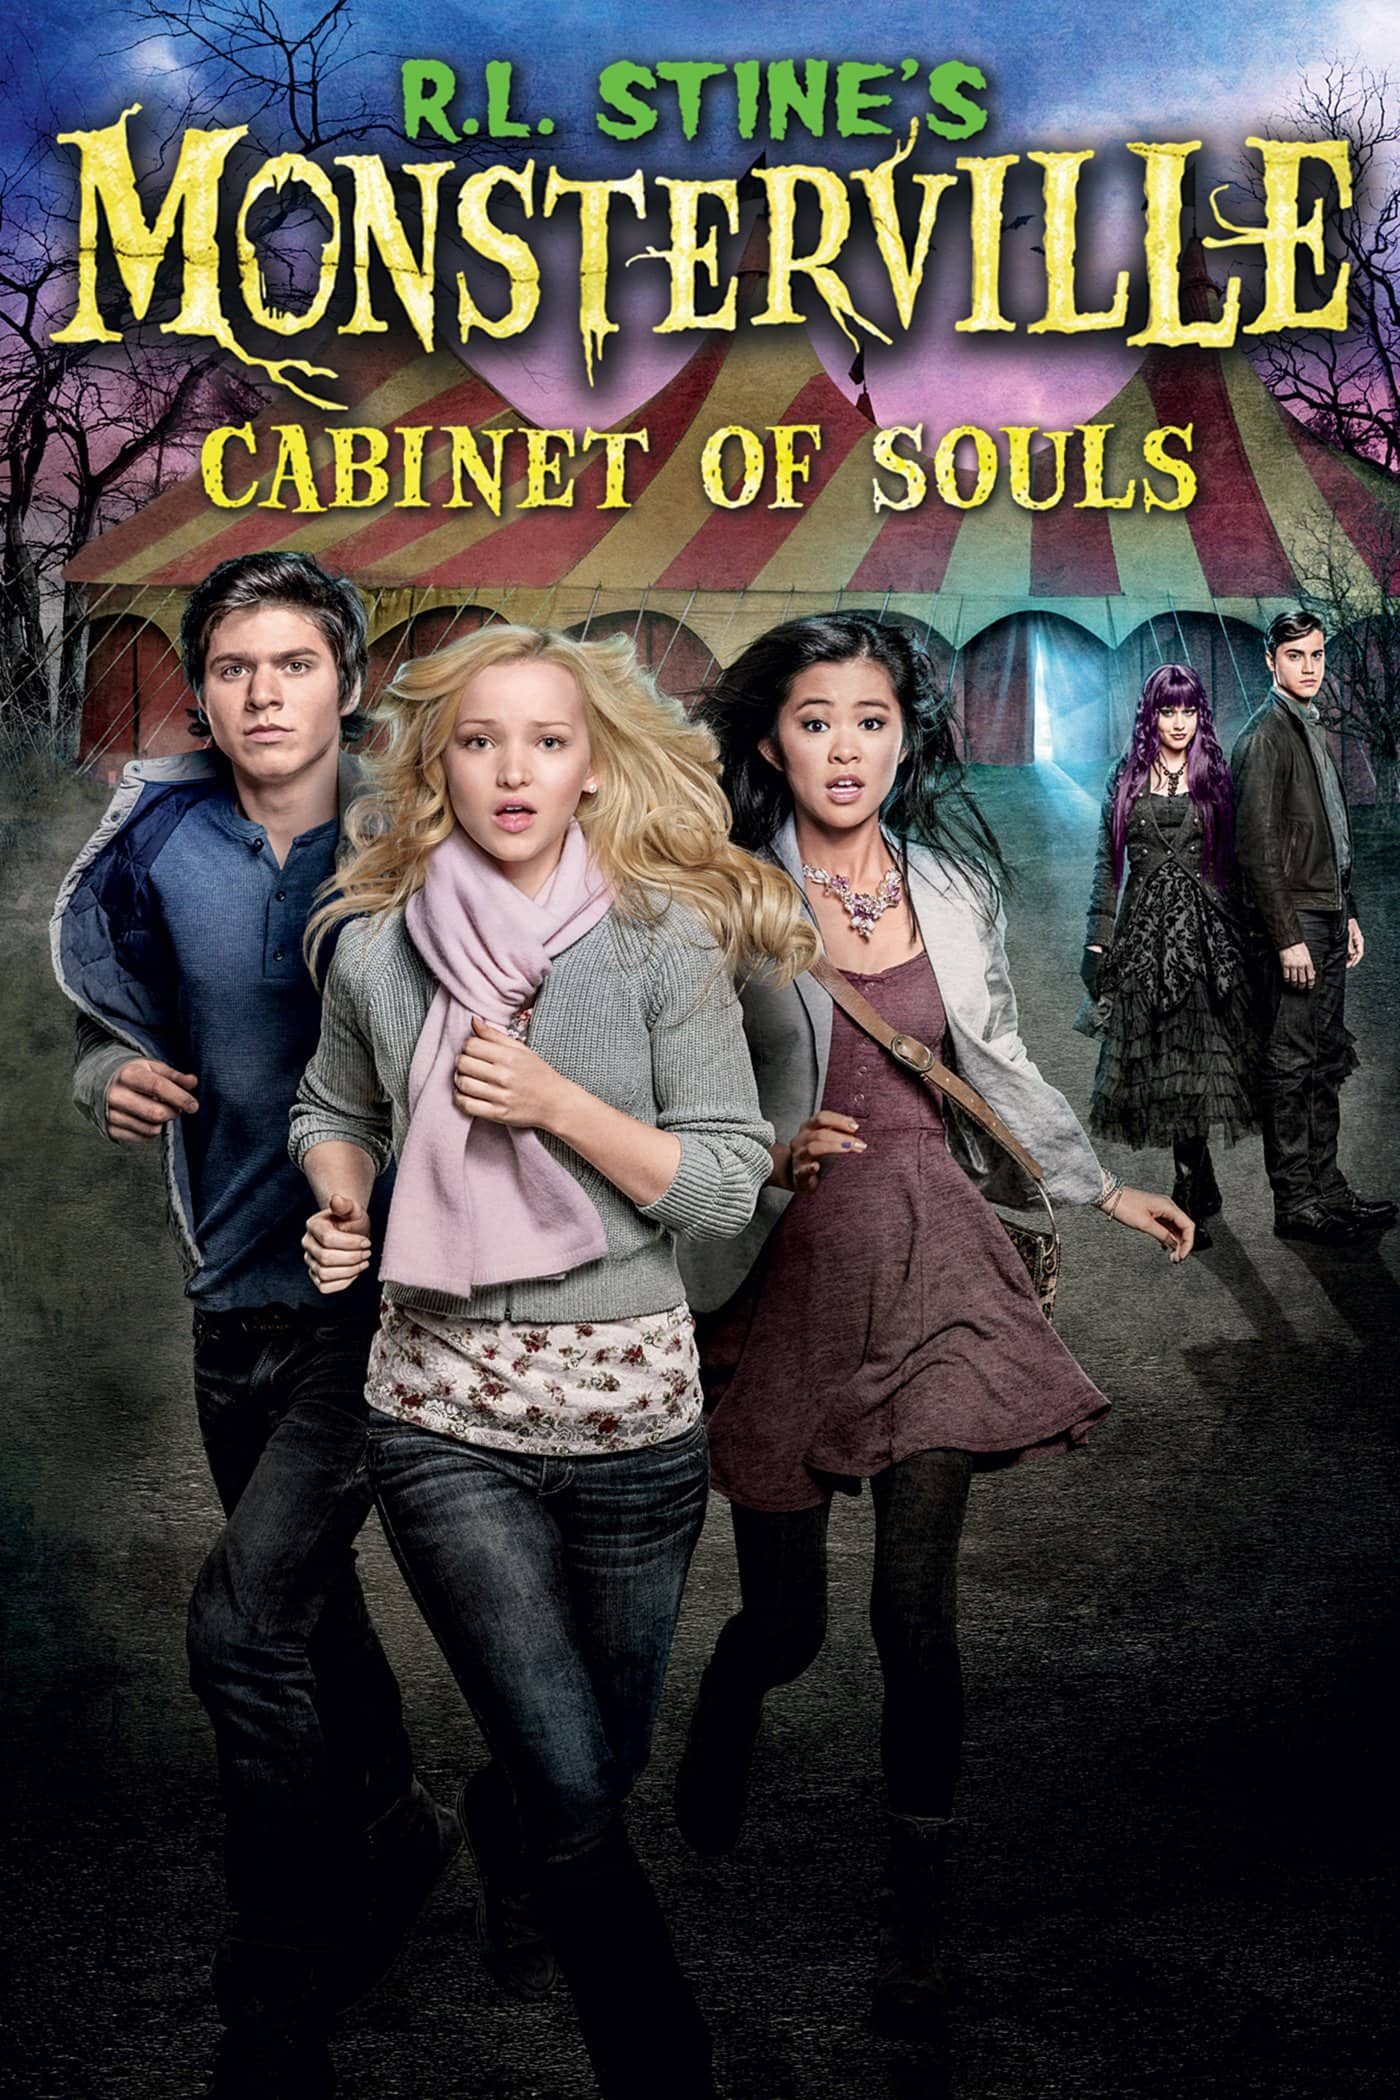 R.L. Stine's Monsterville: The Cabinet of Souls, 2015